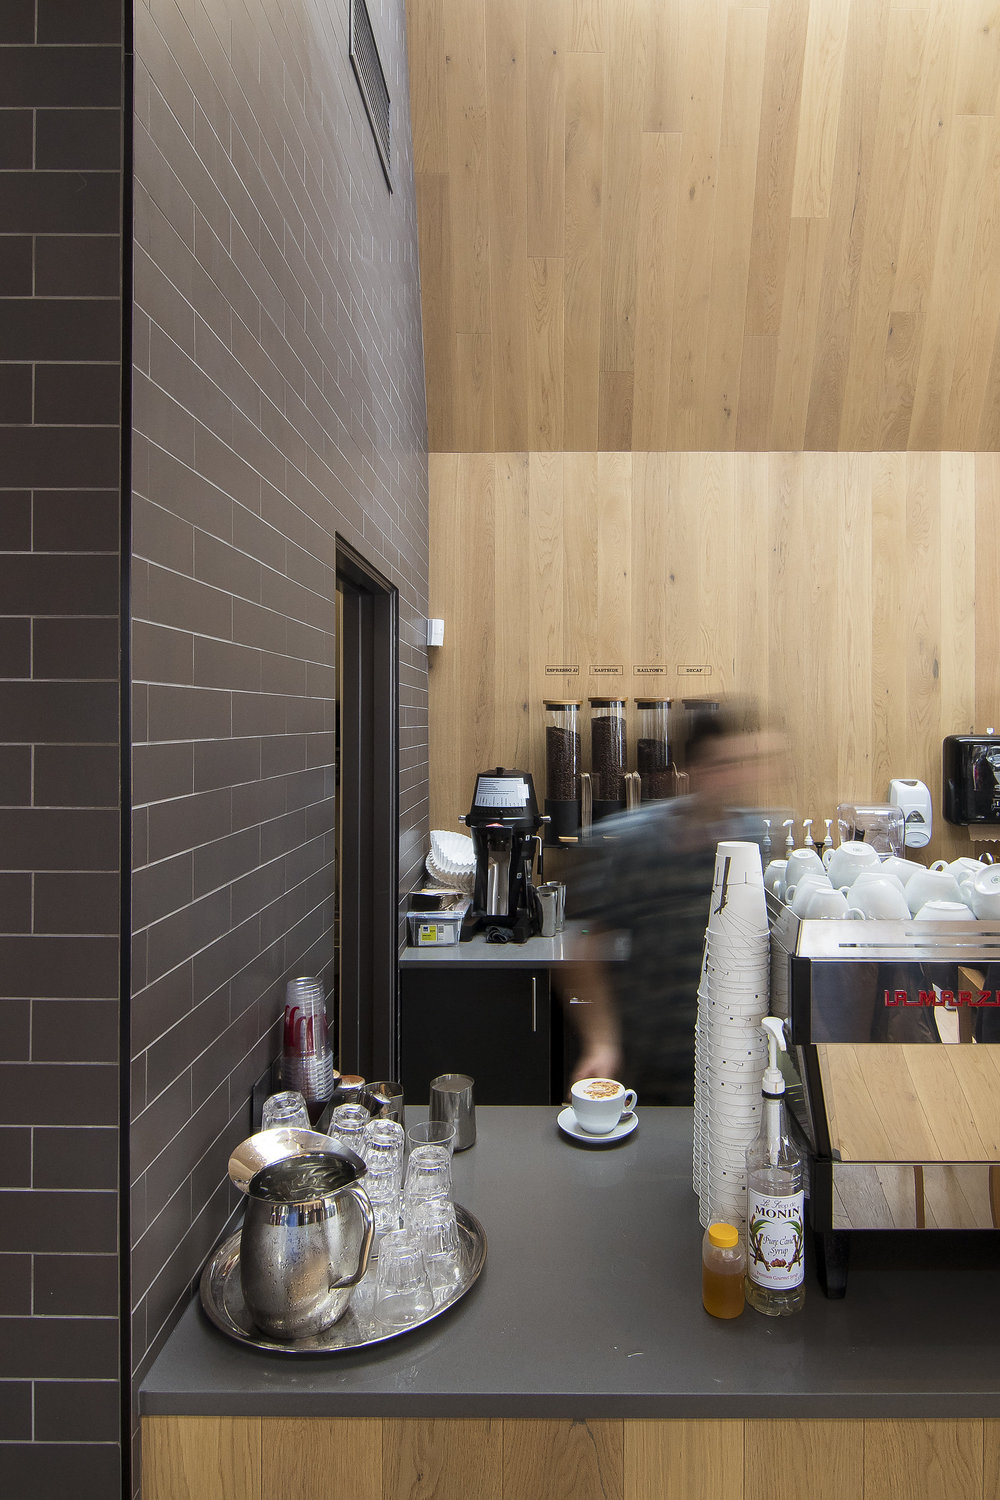 JJ Bean coffee shop Cambie Street interior architectural photography Brett Ryan Studios